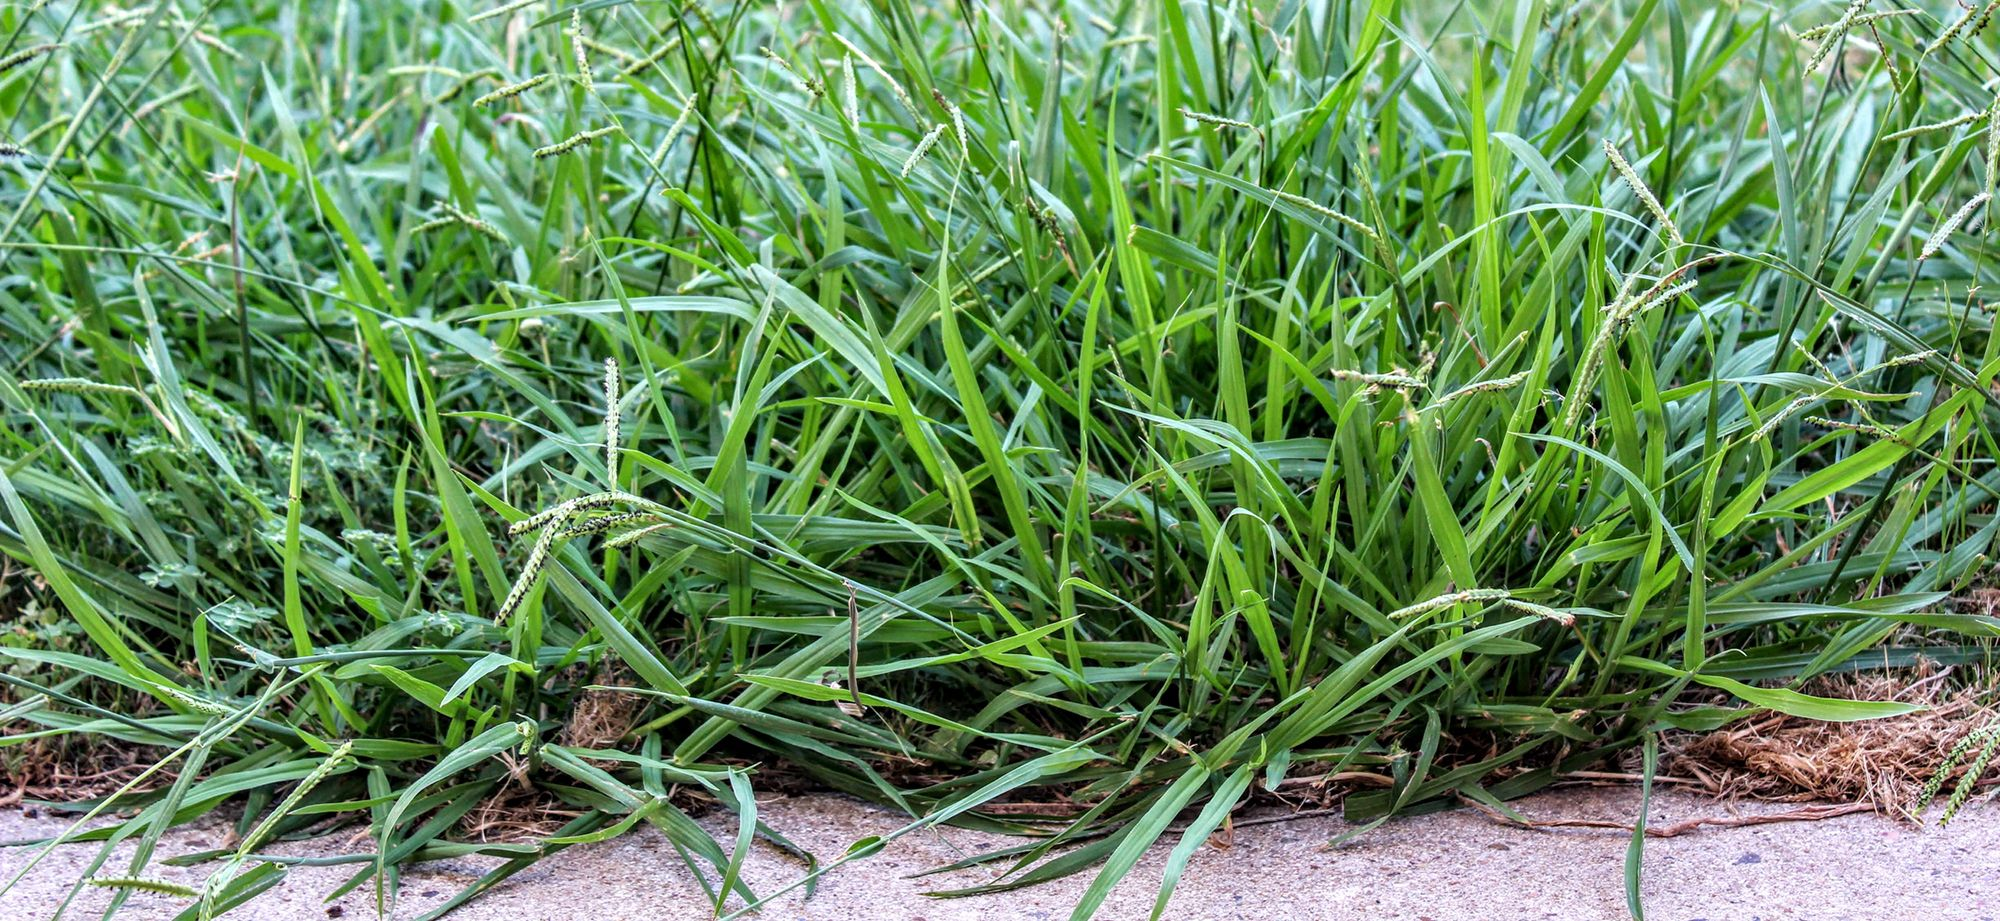 Crabgrass growing in a lawn.